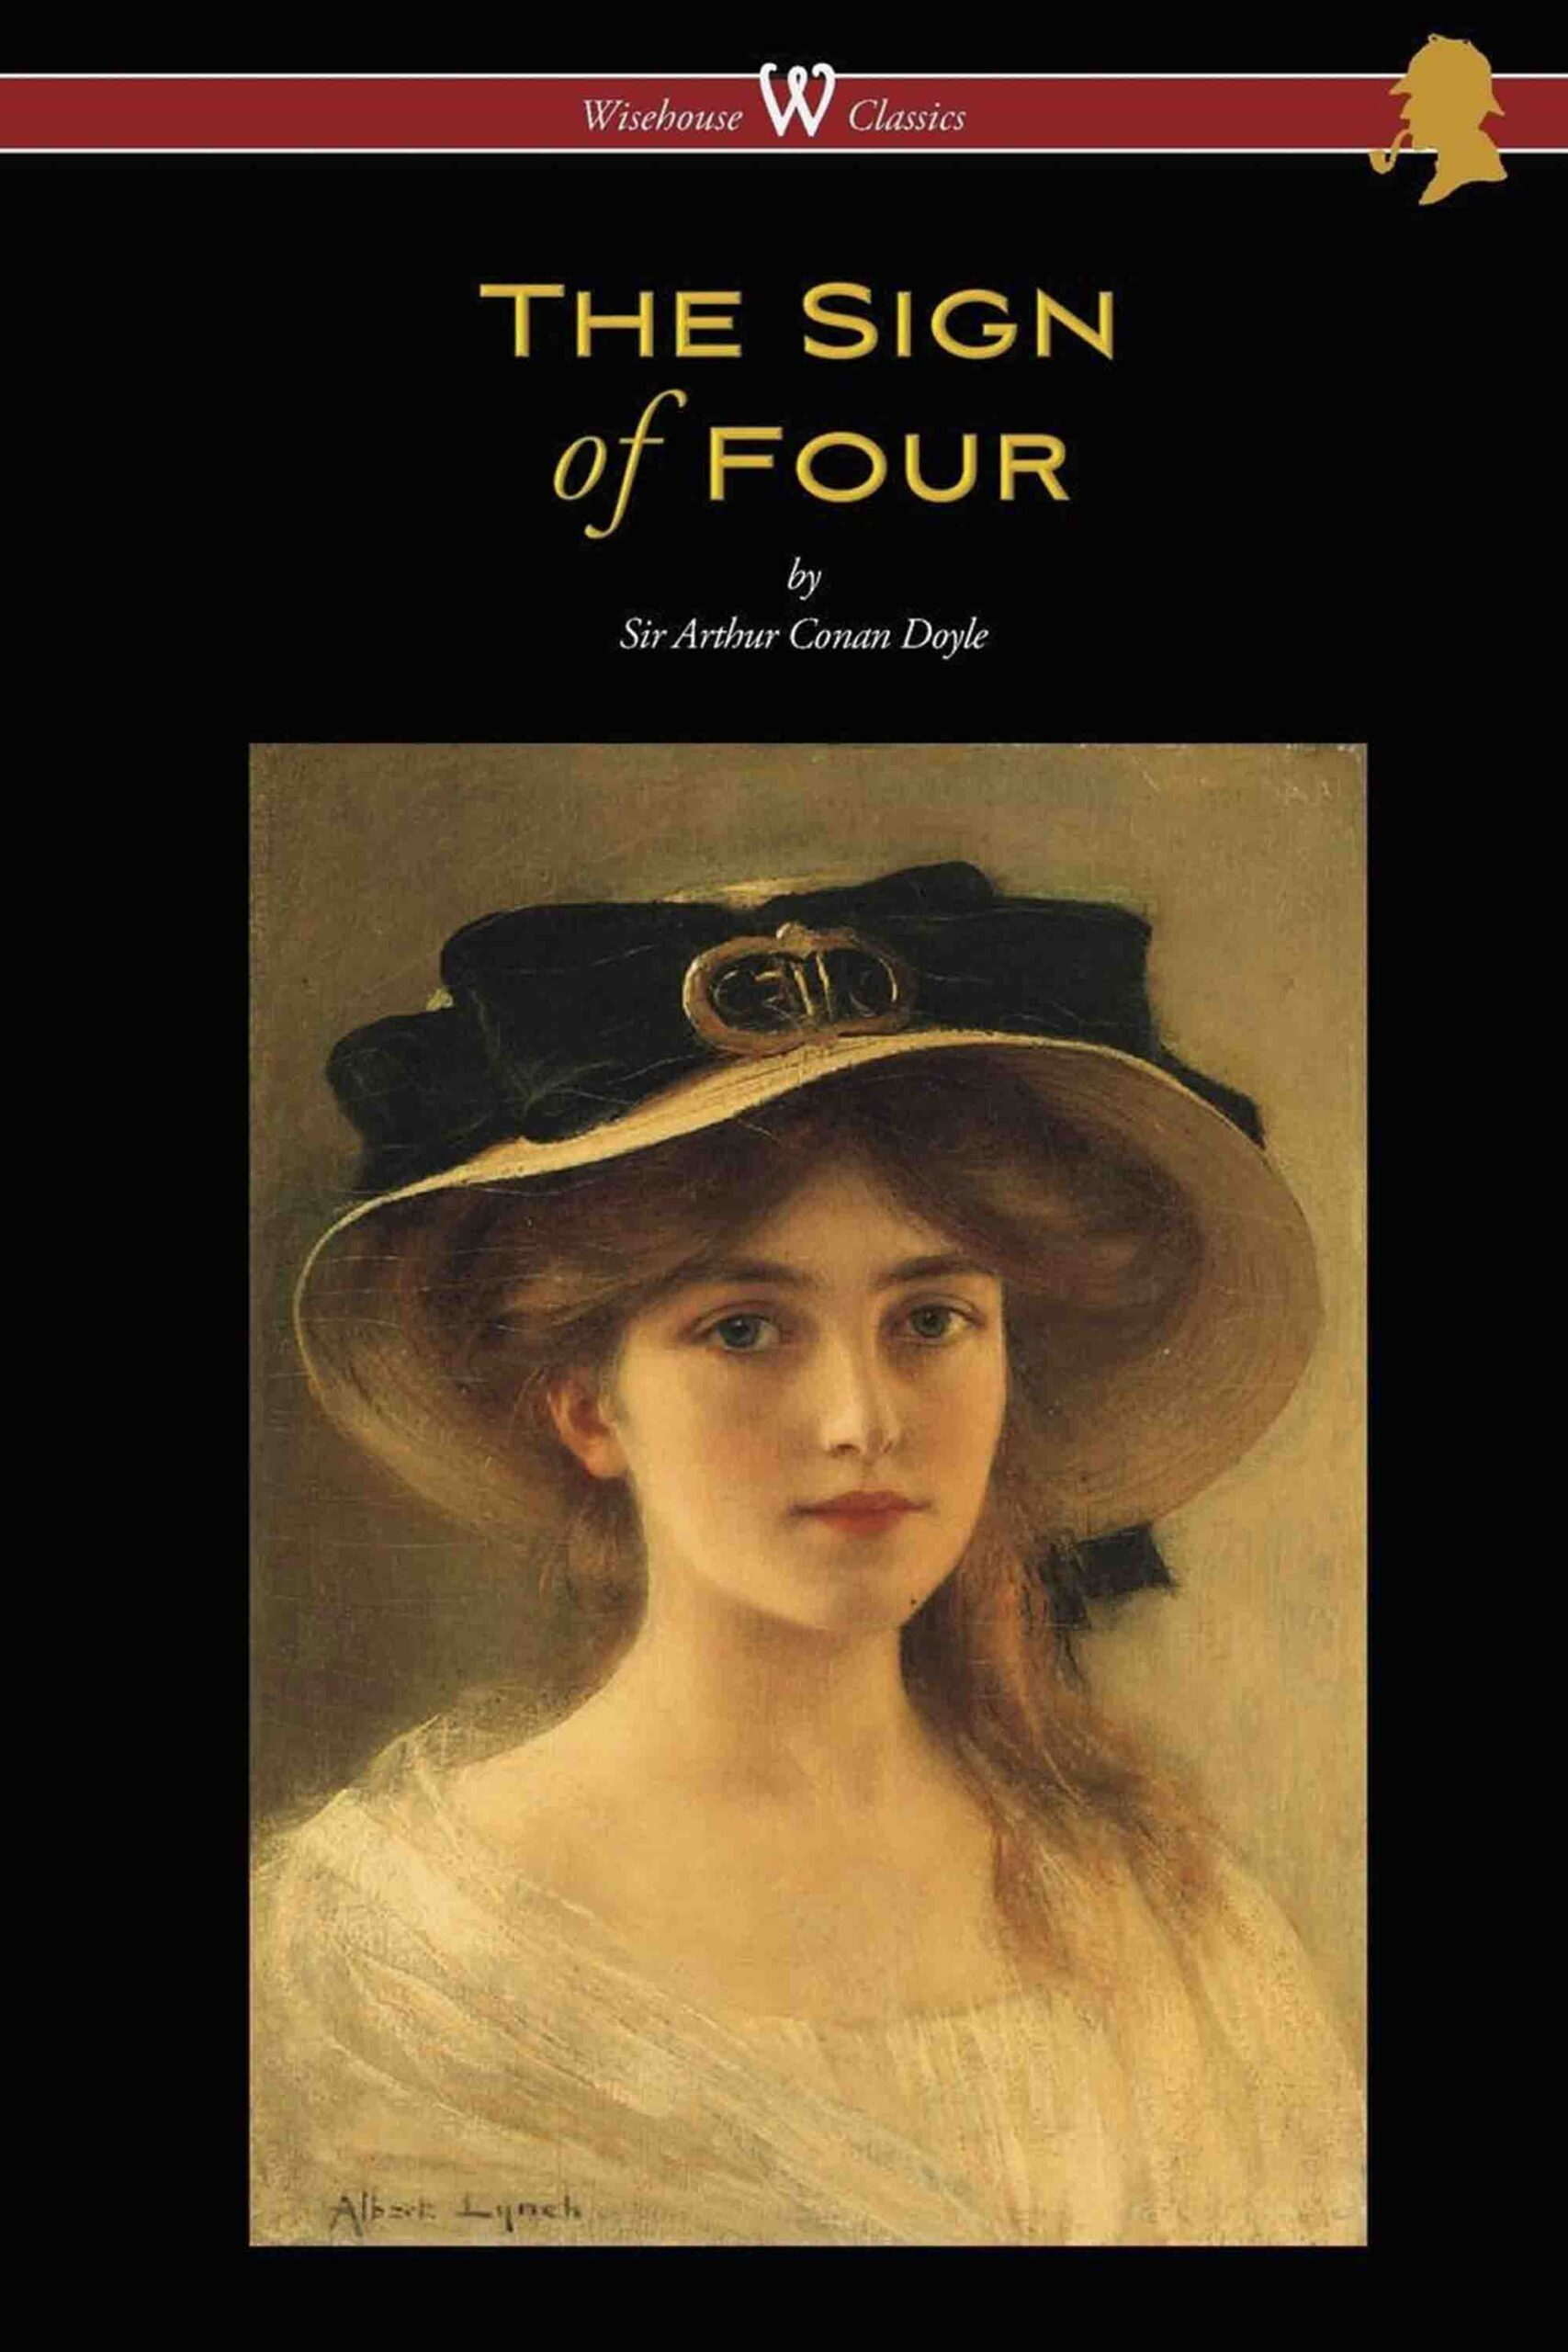 The Sign of Four (Wisehouse Classics Edition – with original illustrations by Richard Gutschmidt)